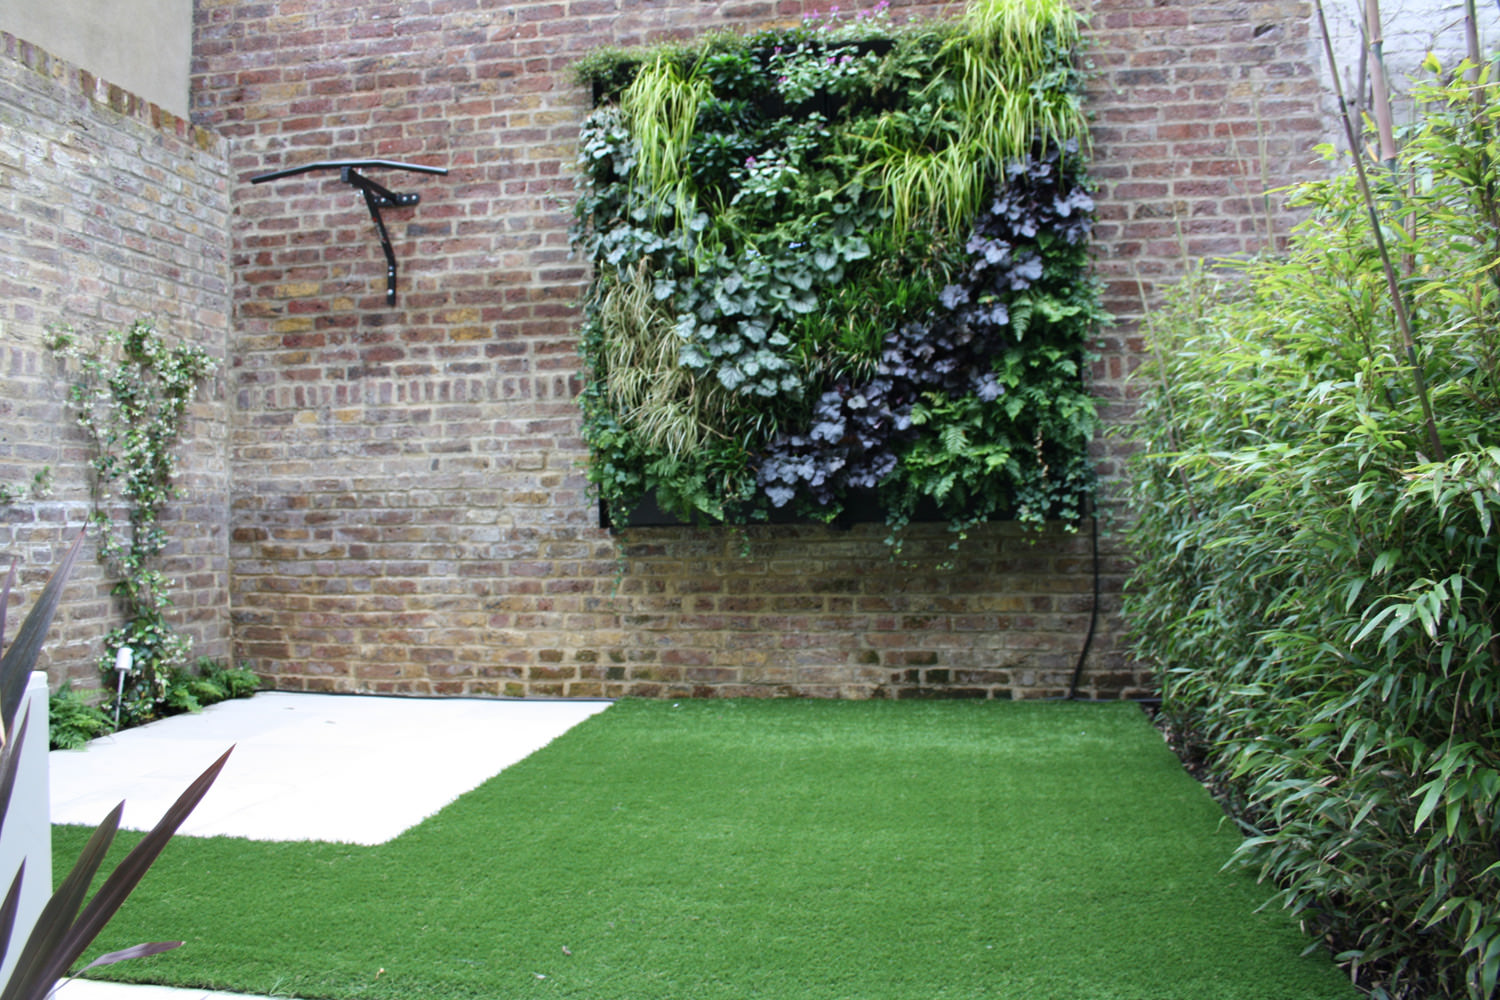 Top 10 london garden designs garden club london for Small garden design pictures